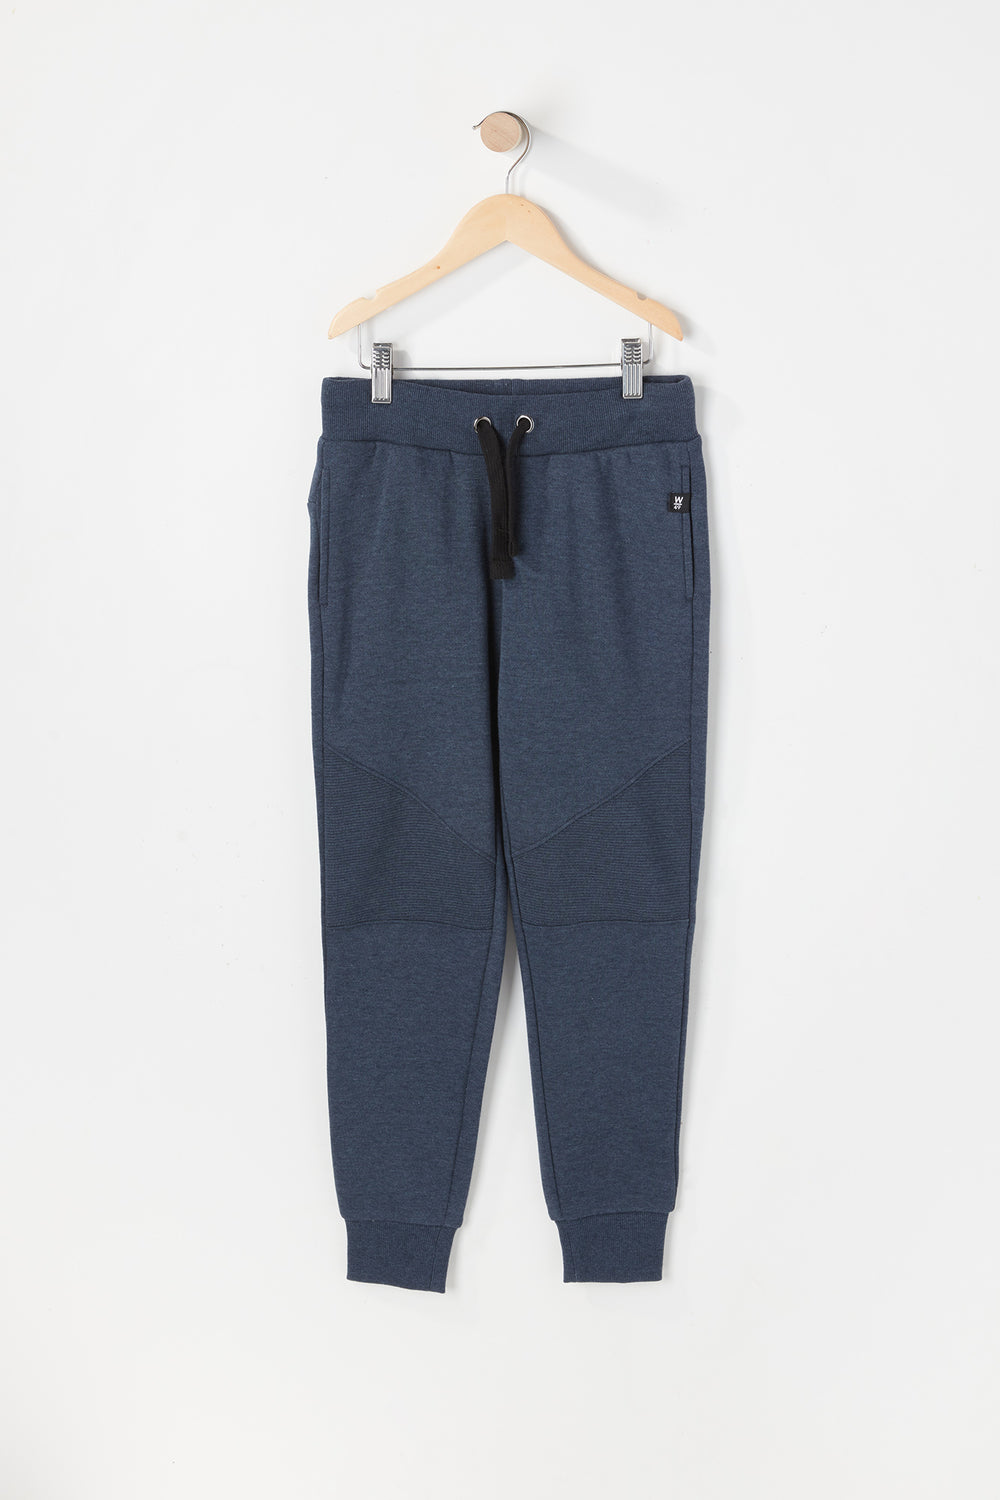 West49 Youth Solid Moto Jogger Denim Blue